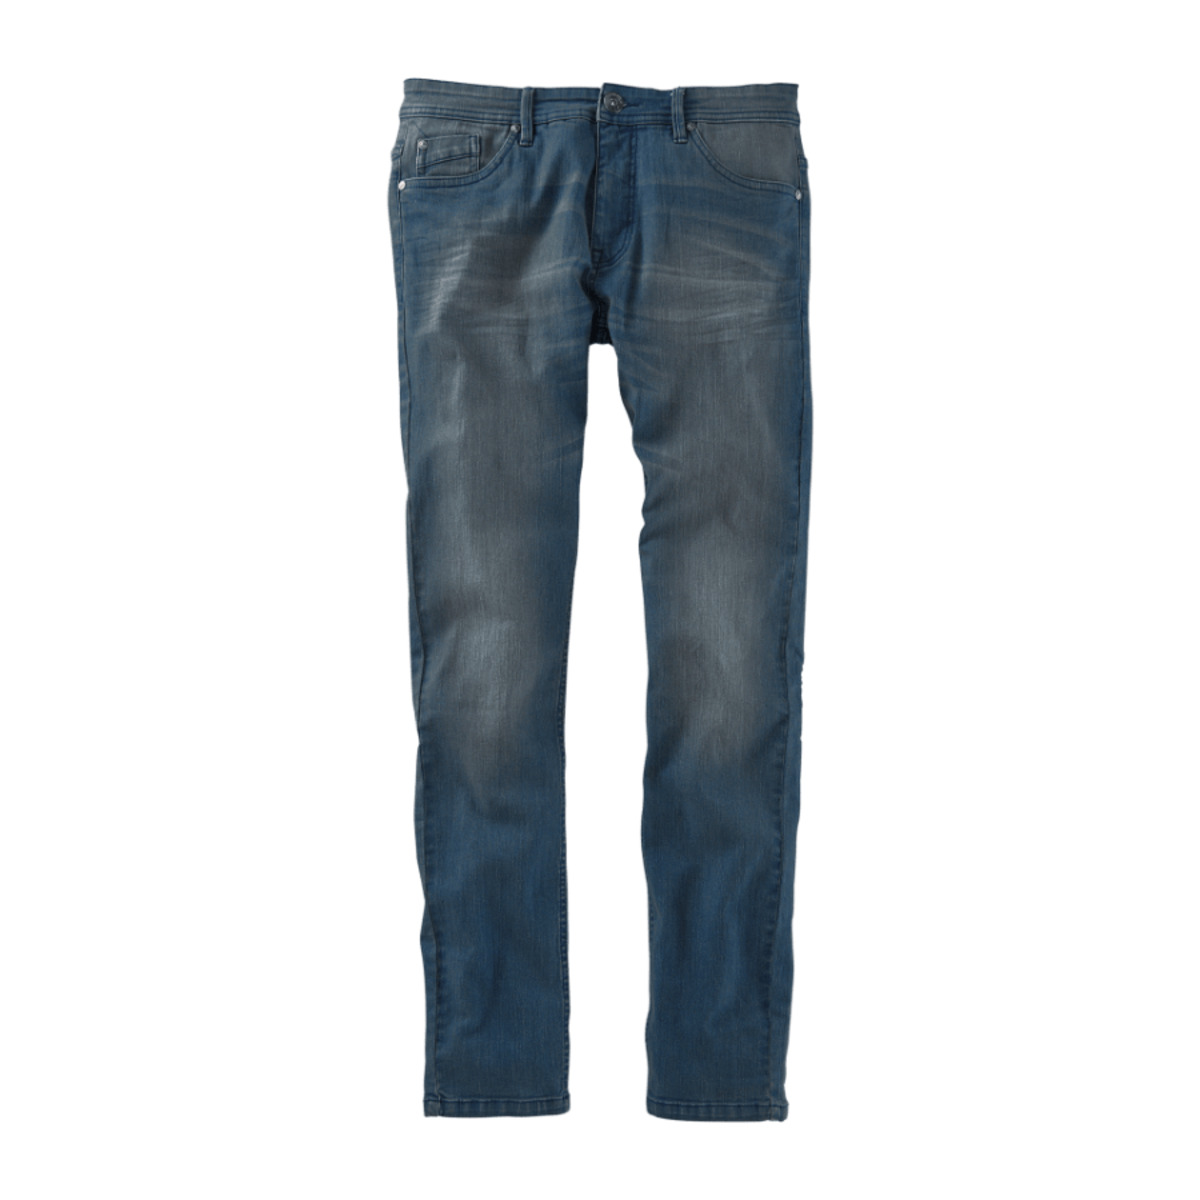 Bild 2 von STRAIGHT UP  	   Super Stretch Jeans